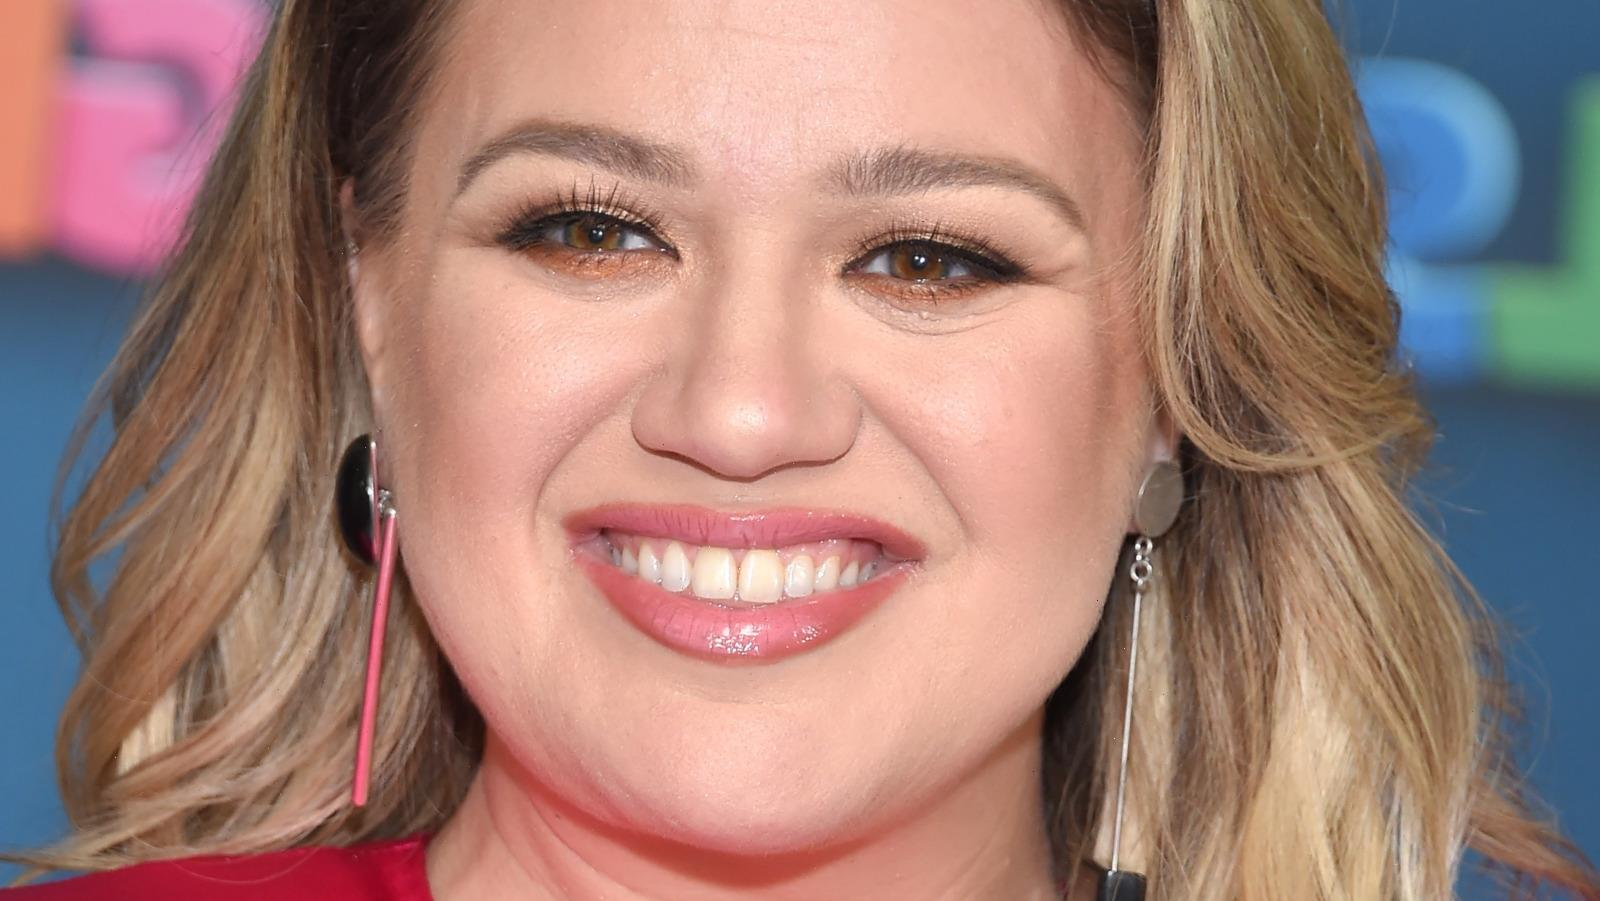 The Real Reason Kelly Clarkson Broke Down In Tears On The Voice